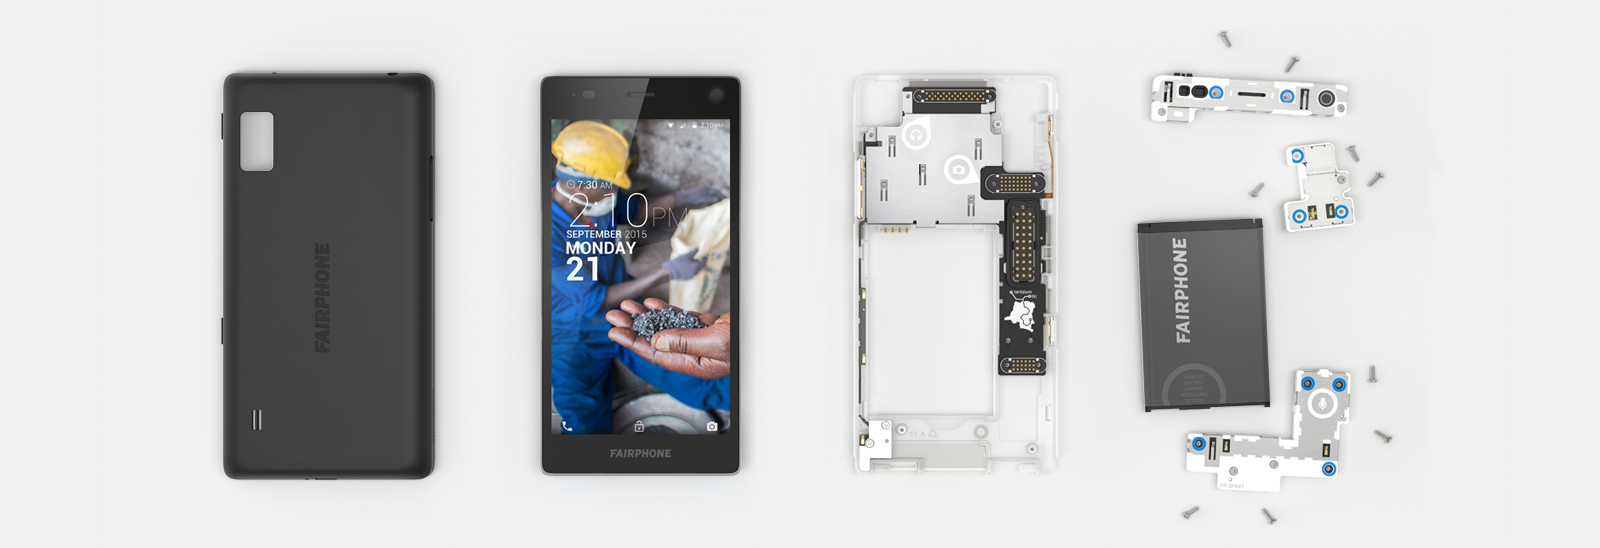 Fairphone 2 - modulare Bauweise